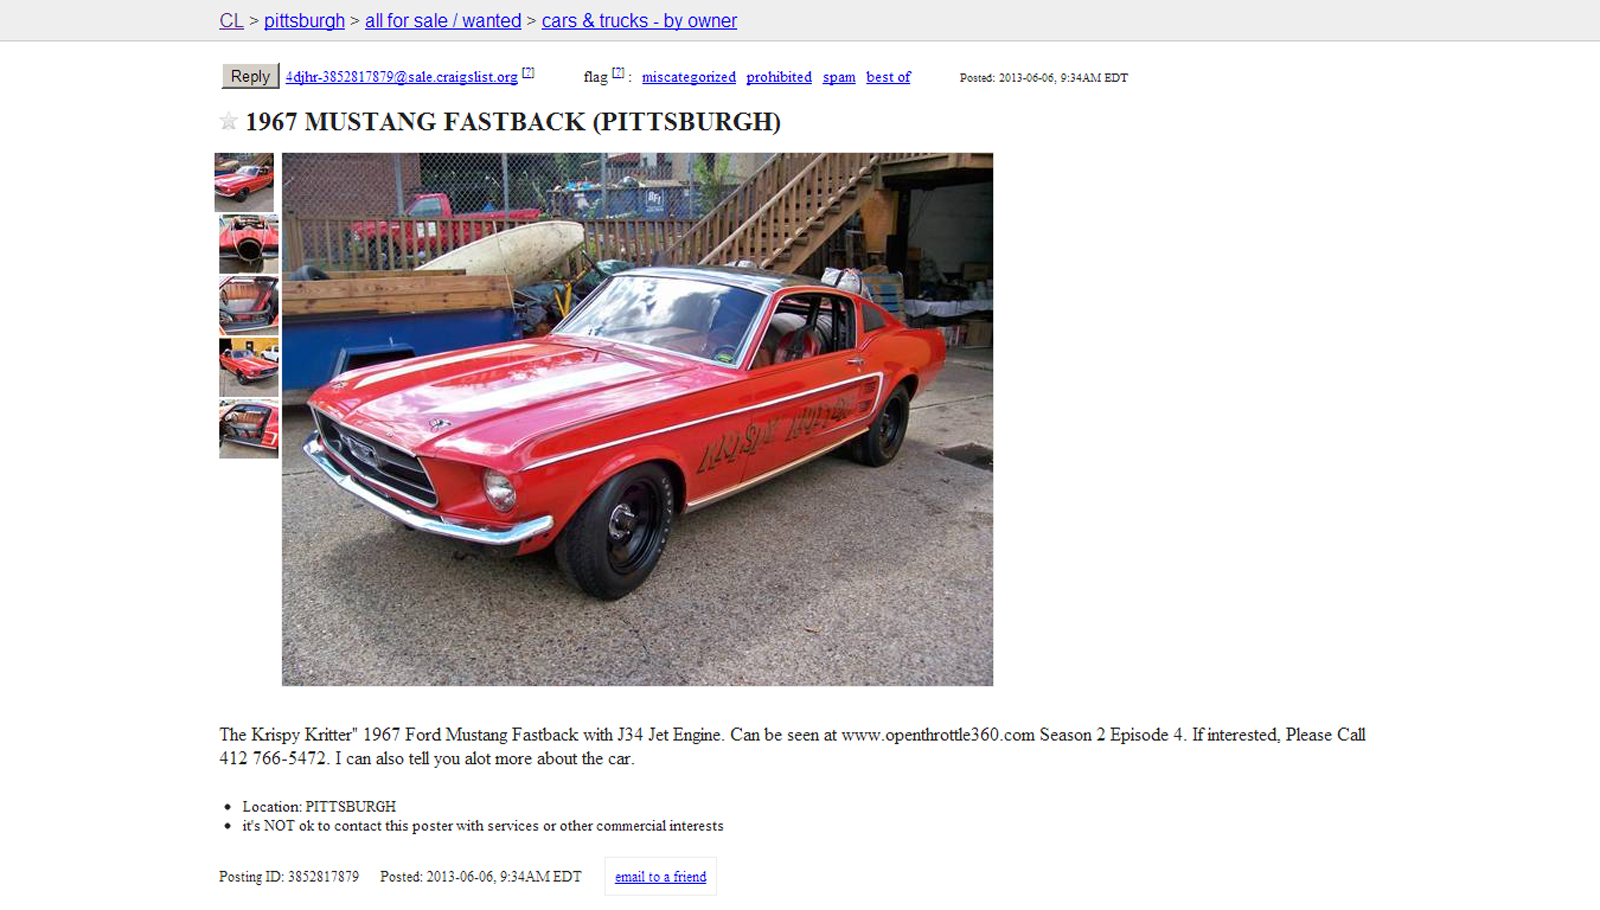 Pittsburgh craigslist cars for sale by owners only.